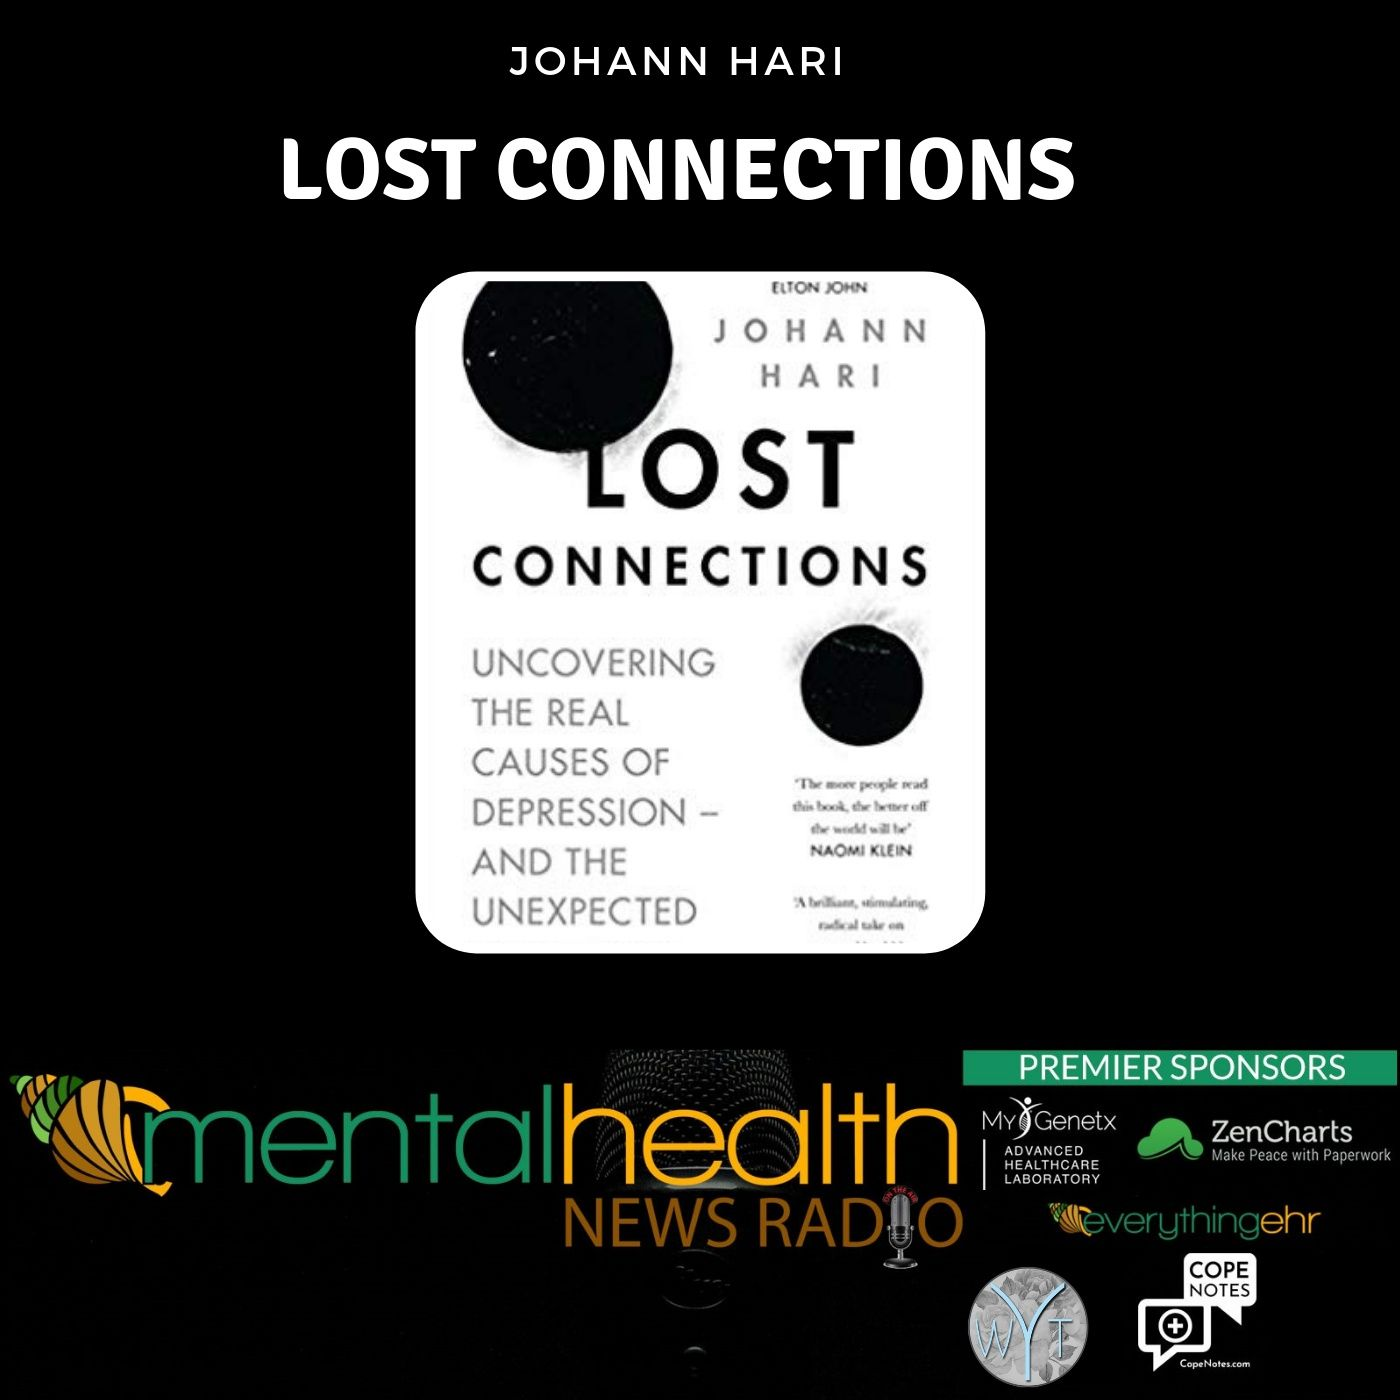 Mental Health News Radio - Lost Connections: Depression Causes and Solutions with Johann Hari